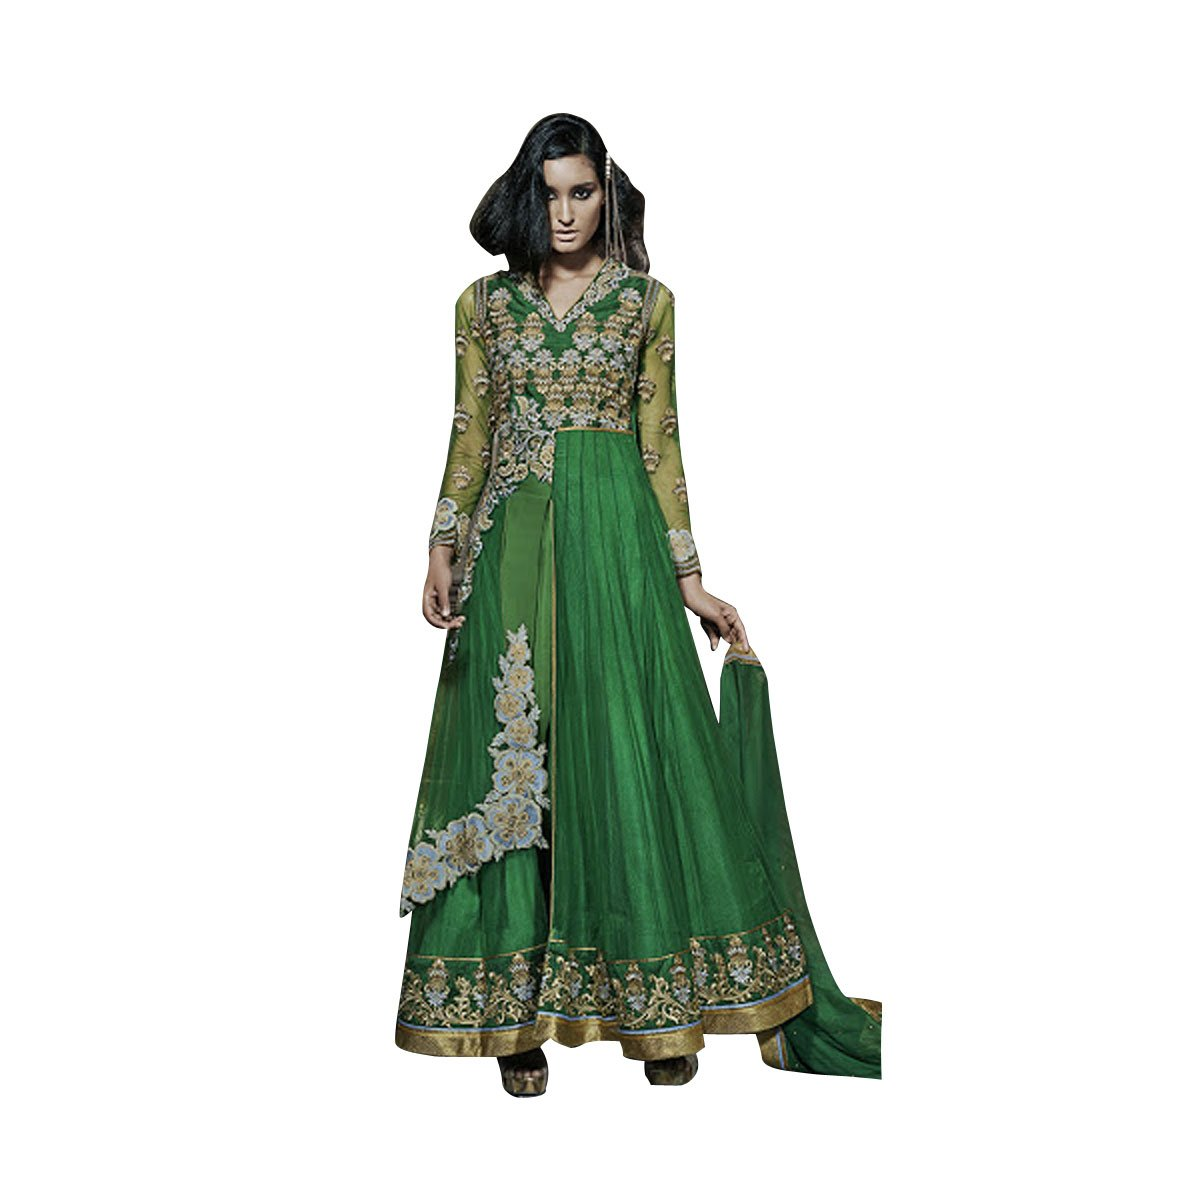 New Launched Eid Hijab Kaftan Collection Indian Gown Anarkali Shalwar Suit Ceremony Muslim H1